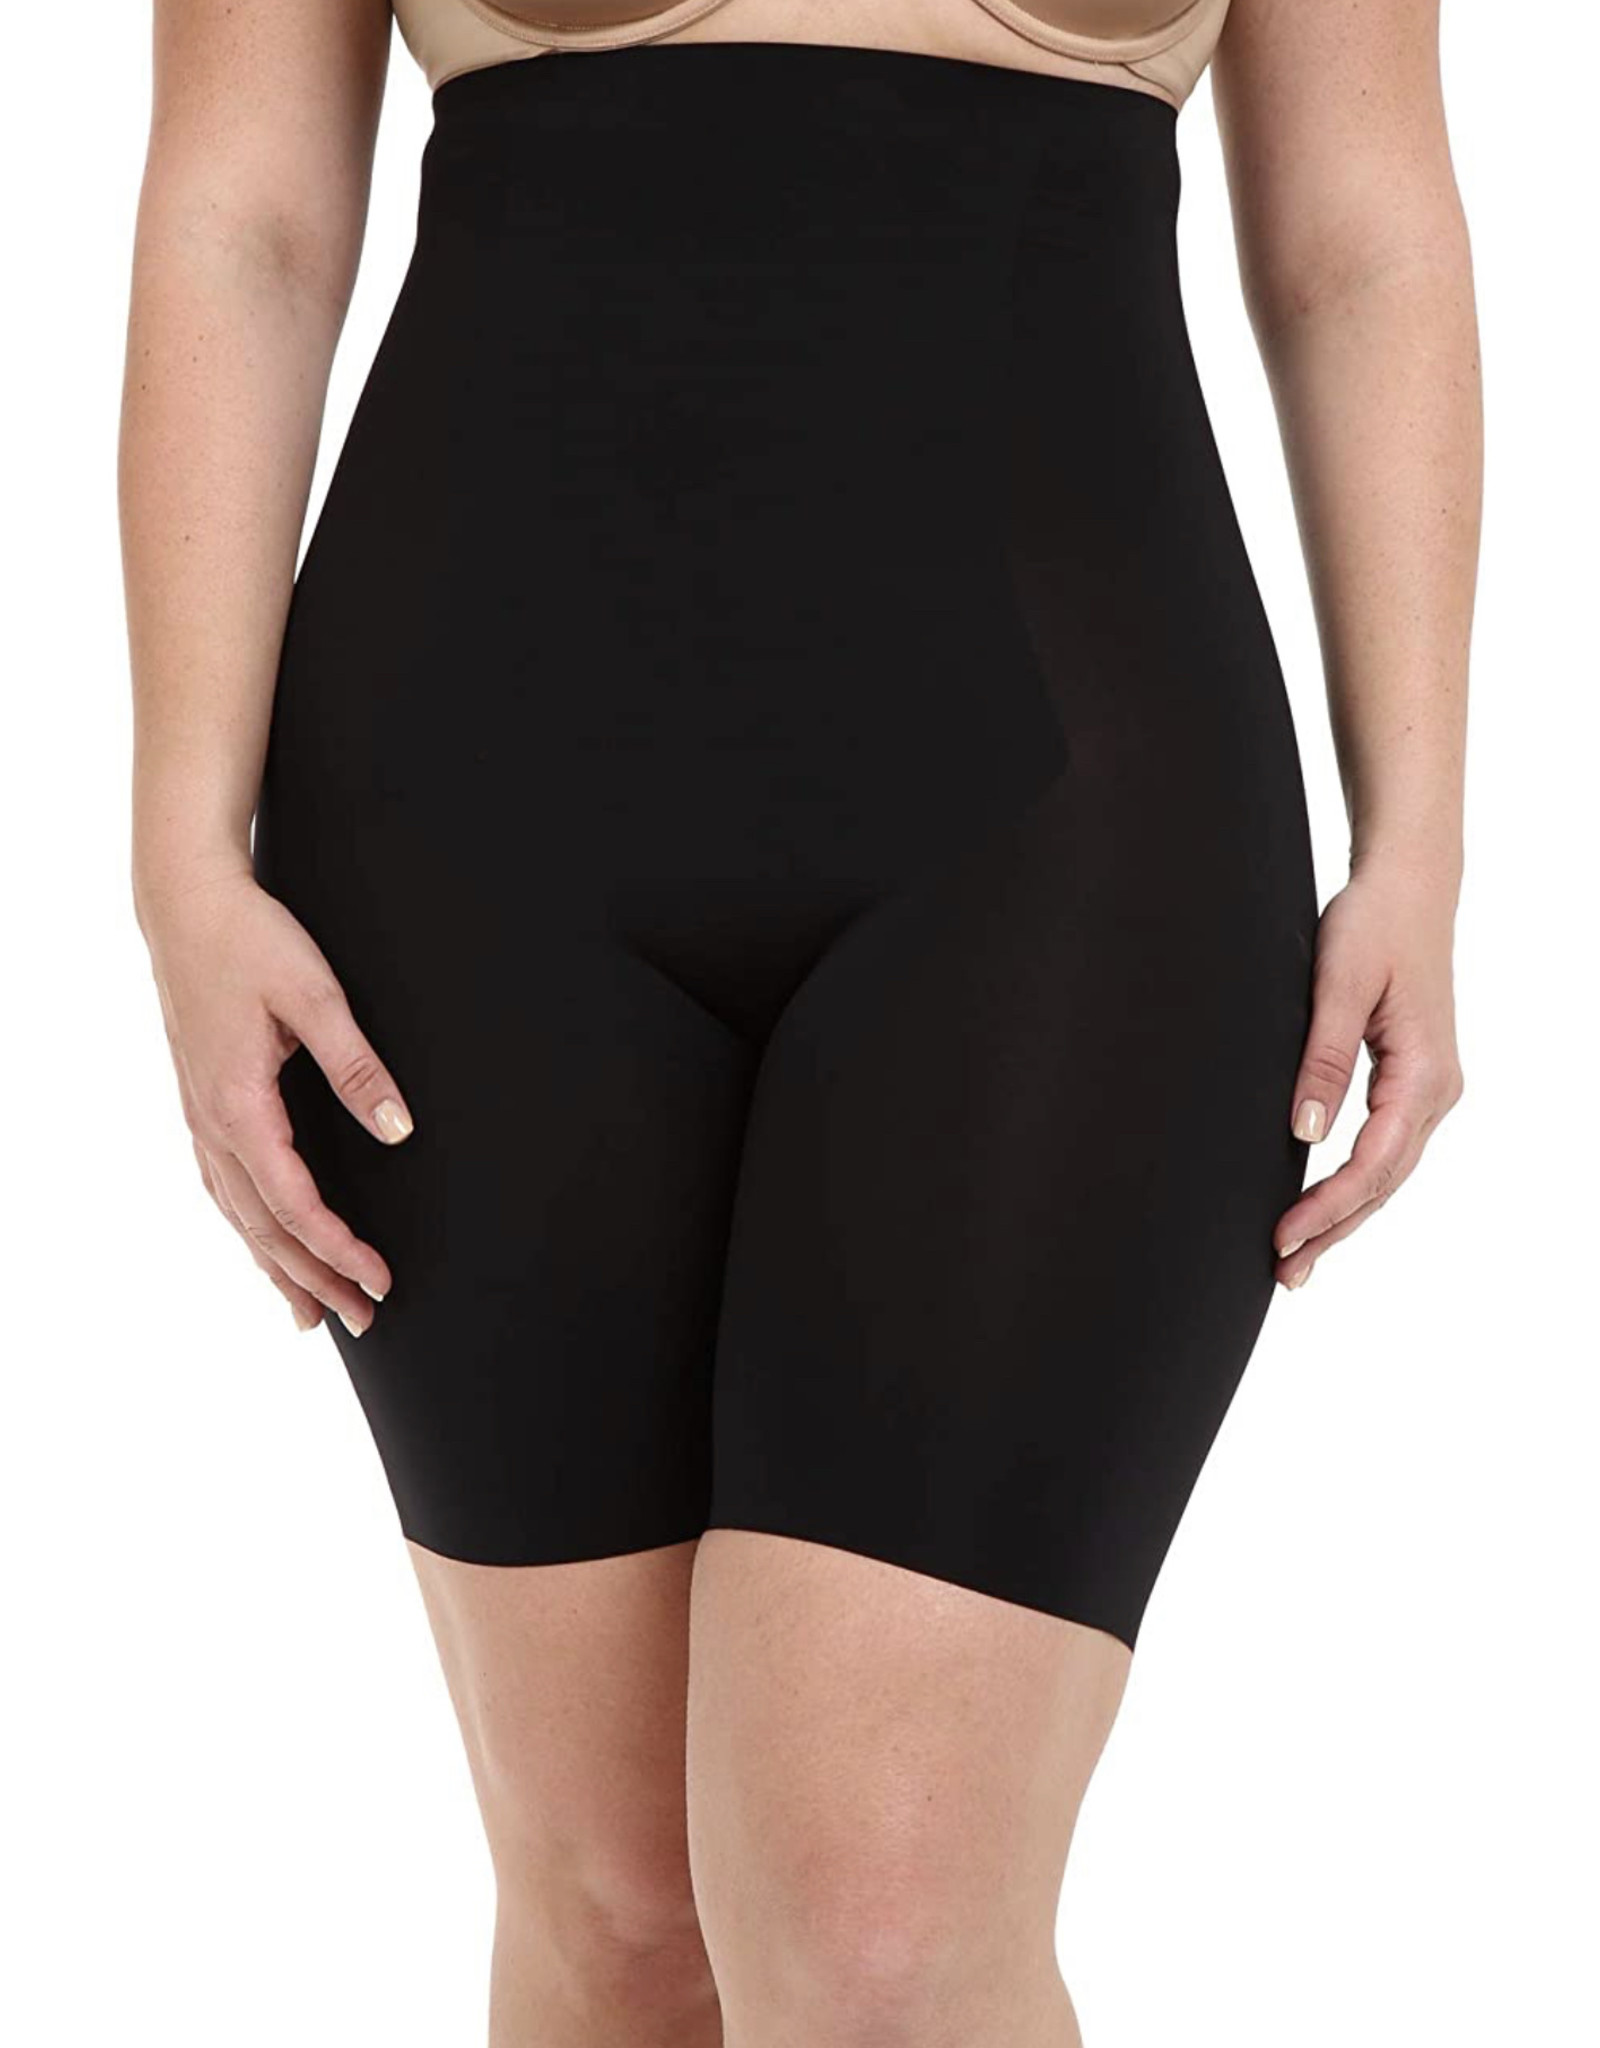 Spanx Spanx Women's Thinstincts High-Waisted Mid Thigh Shorts 10006R